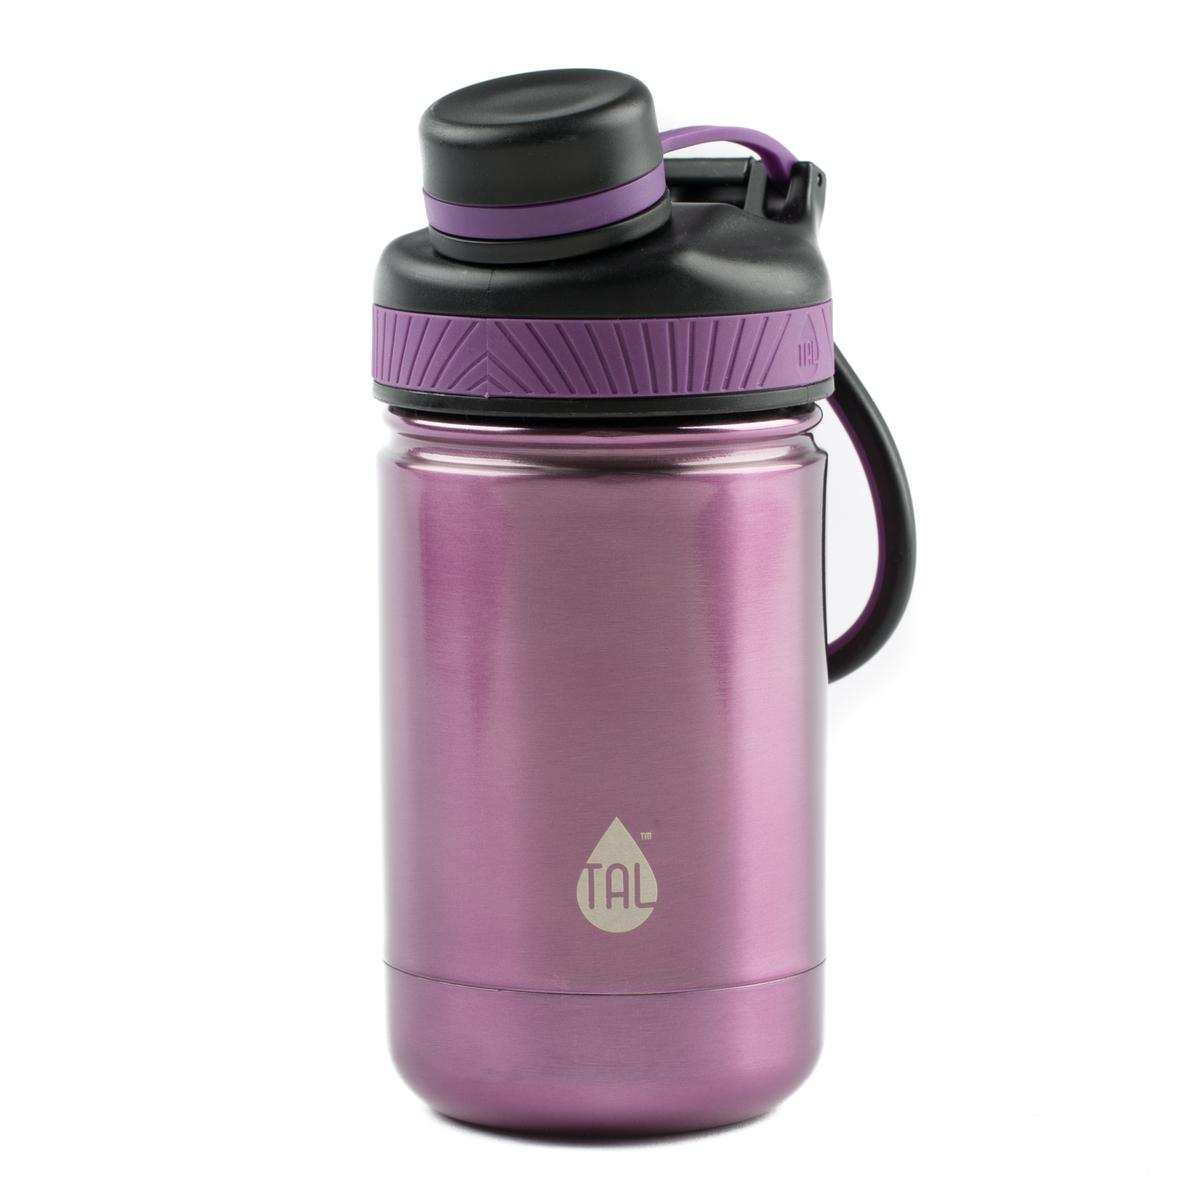 Tal Ranger Pro Stainless Steel 12 Ounce Double Wall Vacuum Insulated Purple Water Bottle, 1 Each